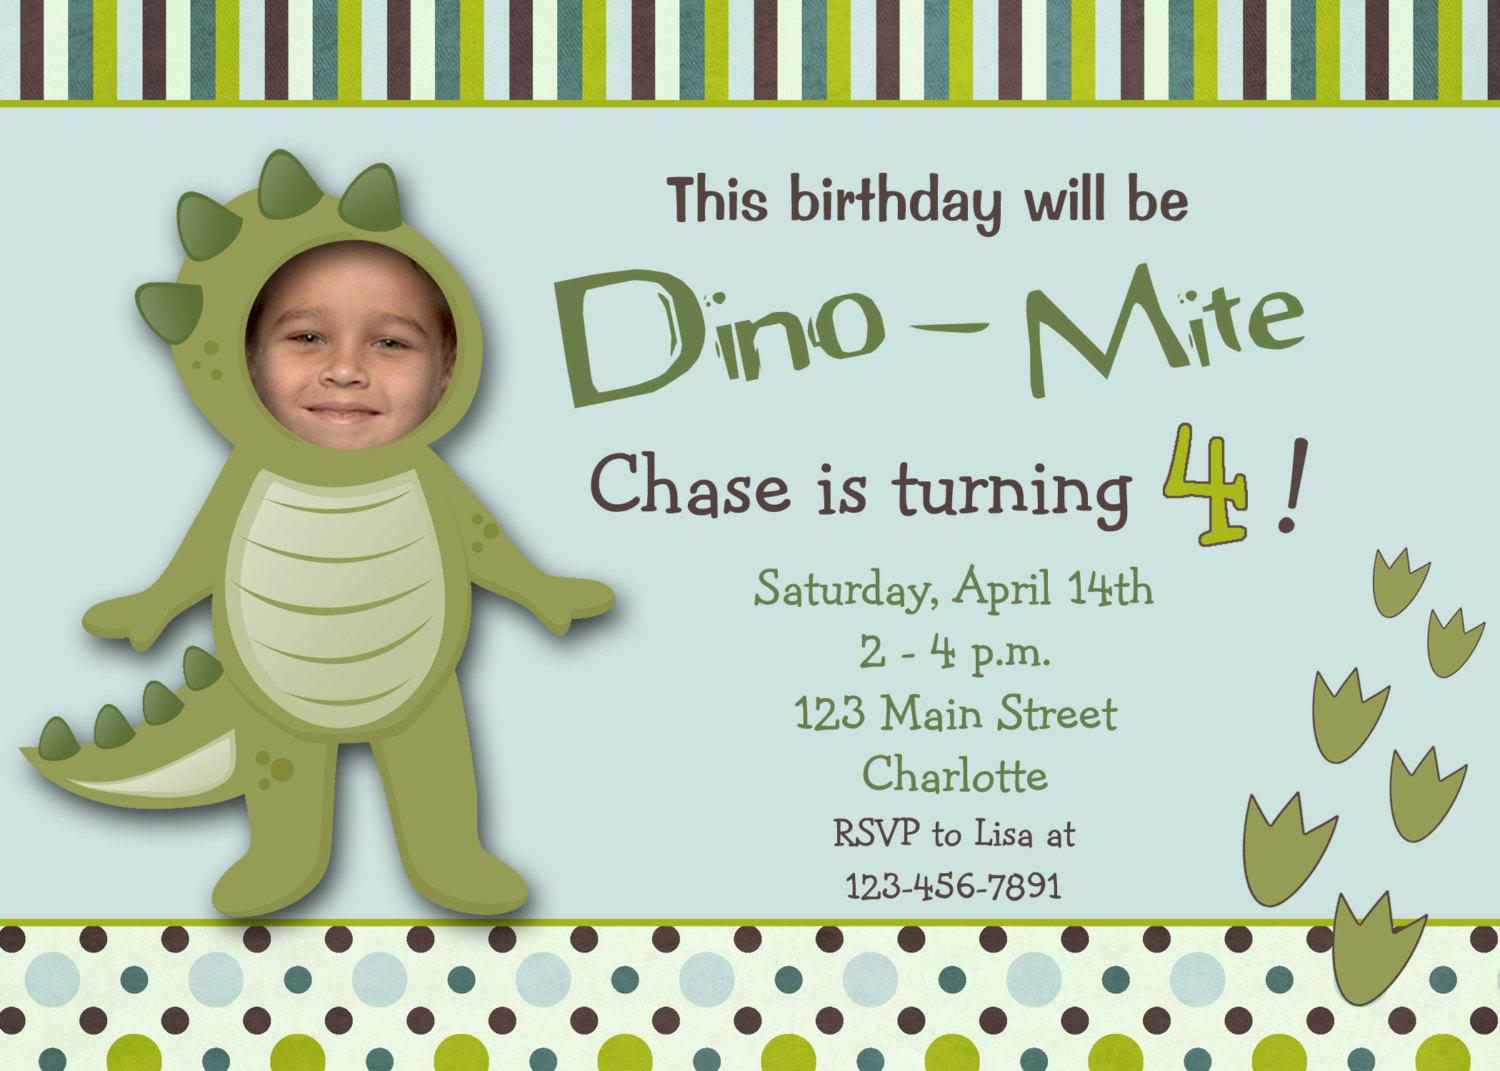 17 dinosaur birthday invitations how to sample templates dinosaur birthday invitations for 4th kids birthday party filmwisefo